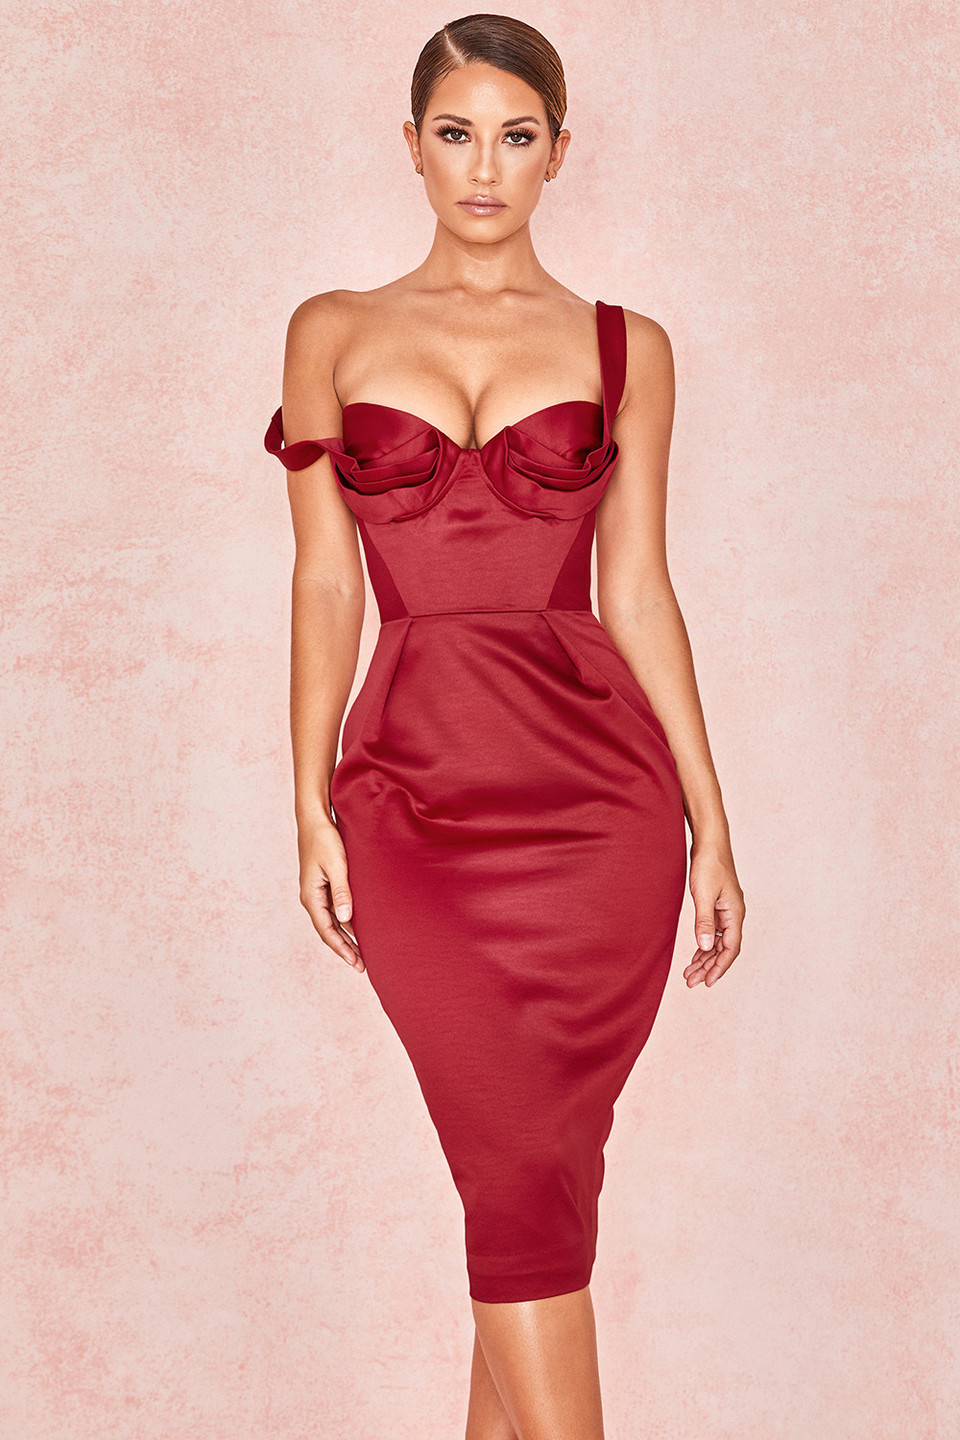 Charlotte Wine Satin Draped Bustier Dress